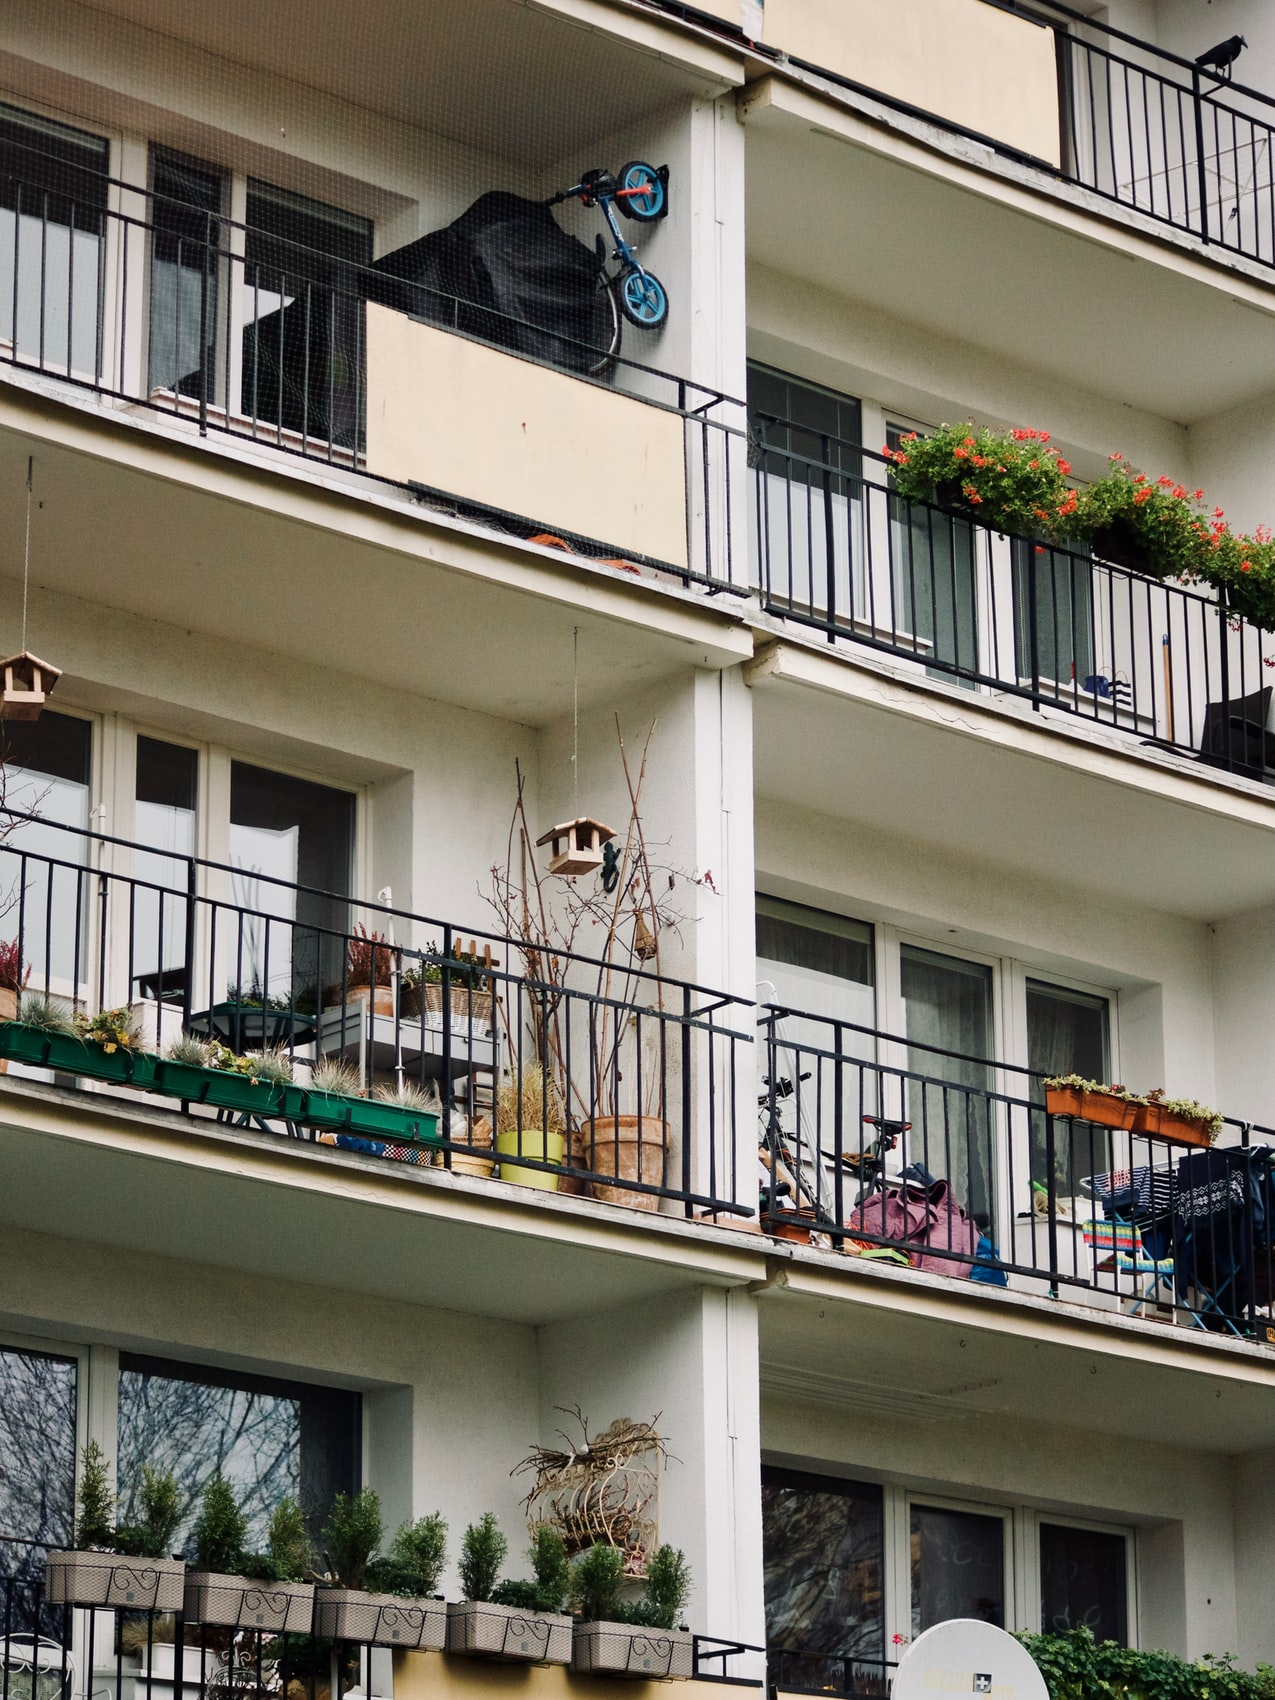 Best Grills for Apartment Balcony 2